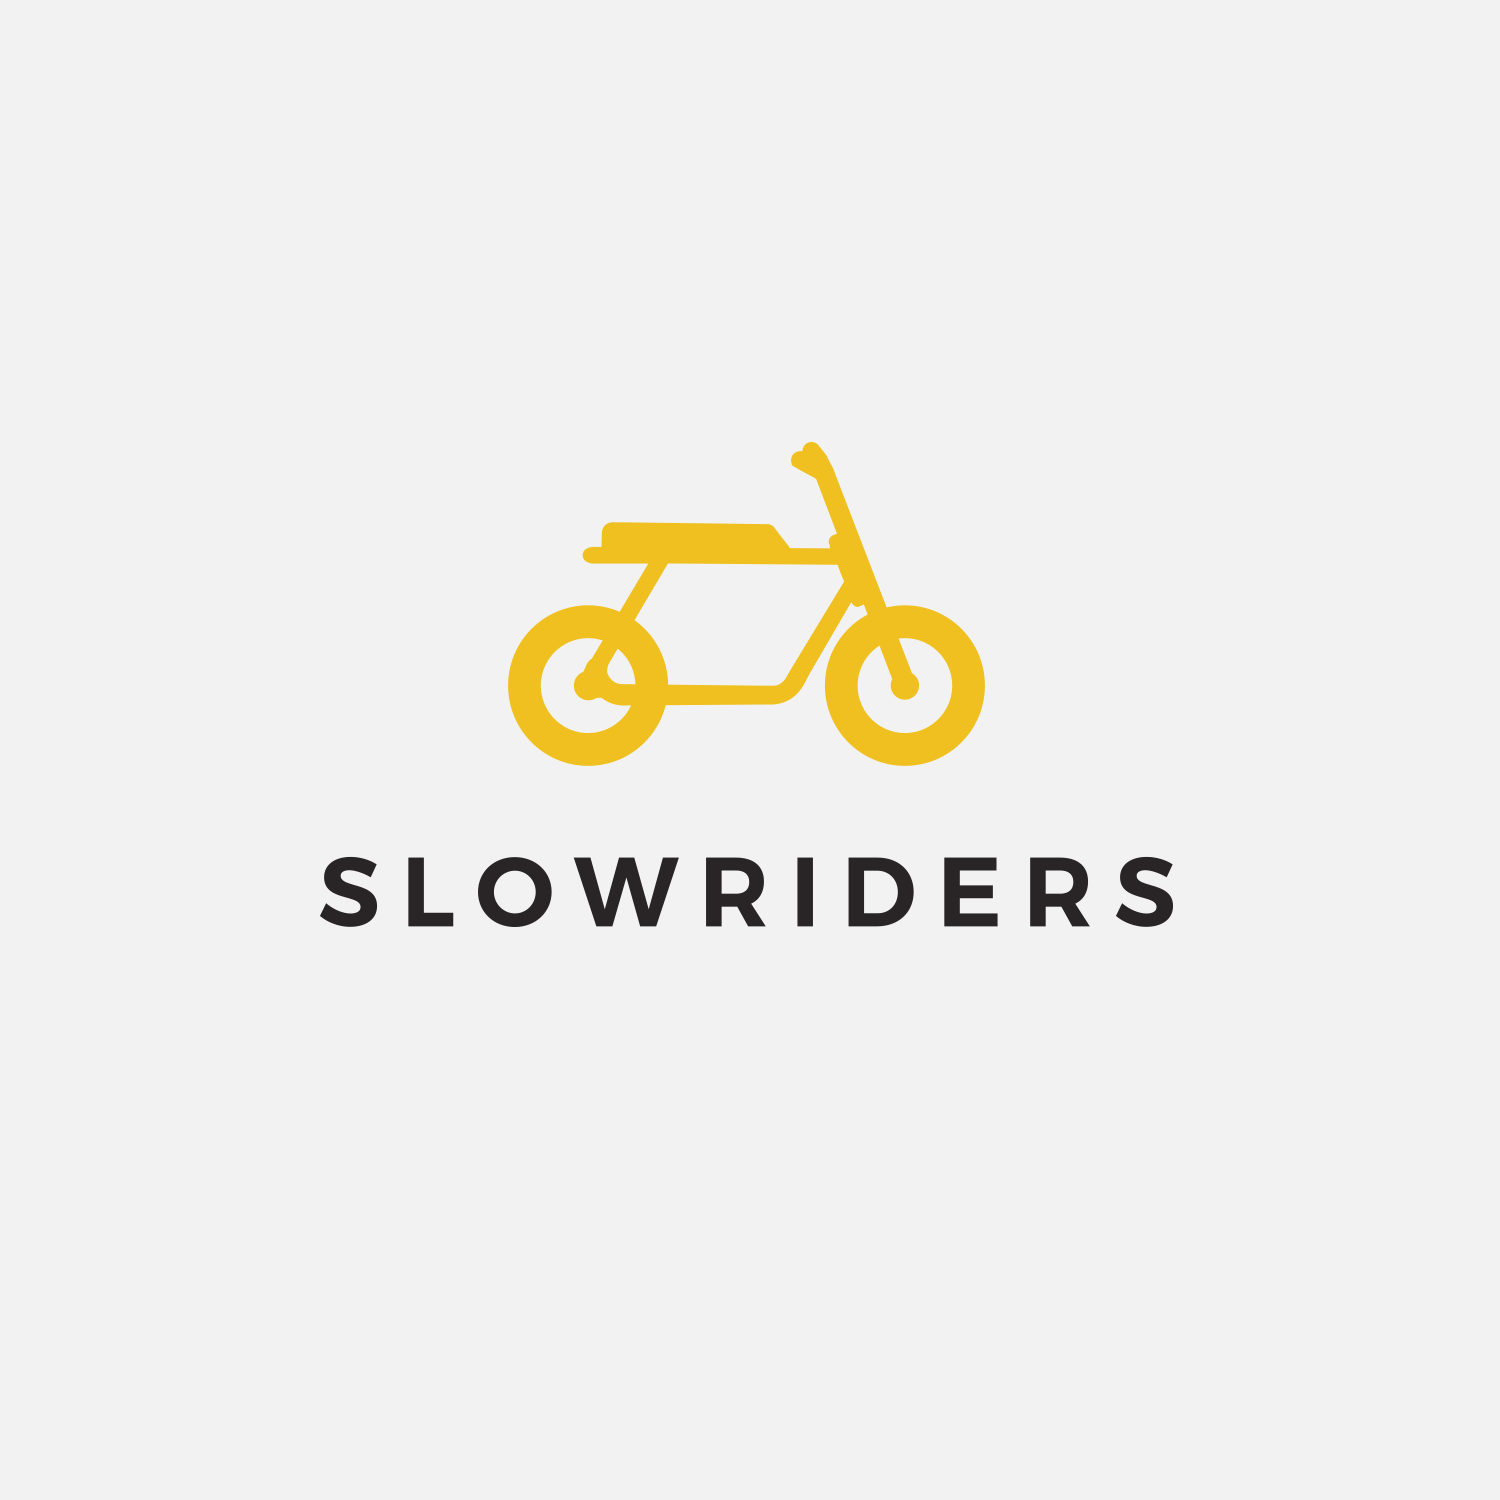 Slowriders Bike Club Logo